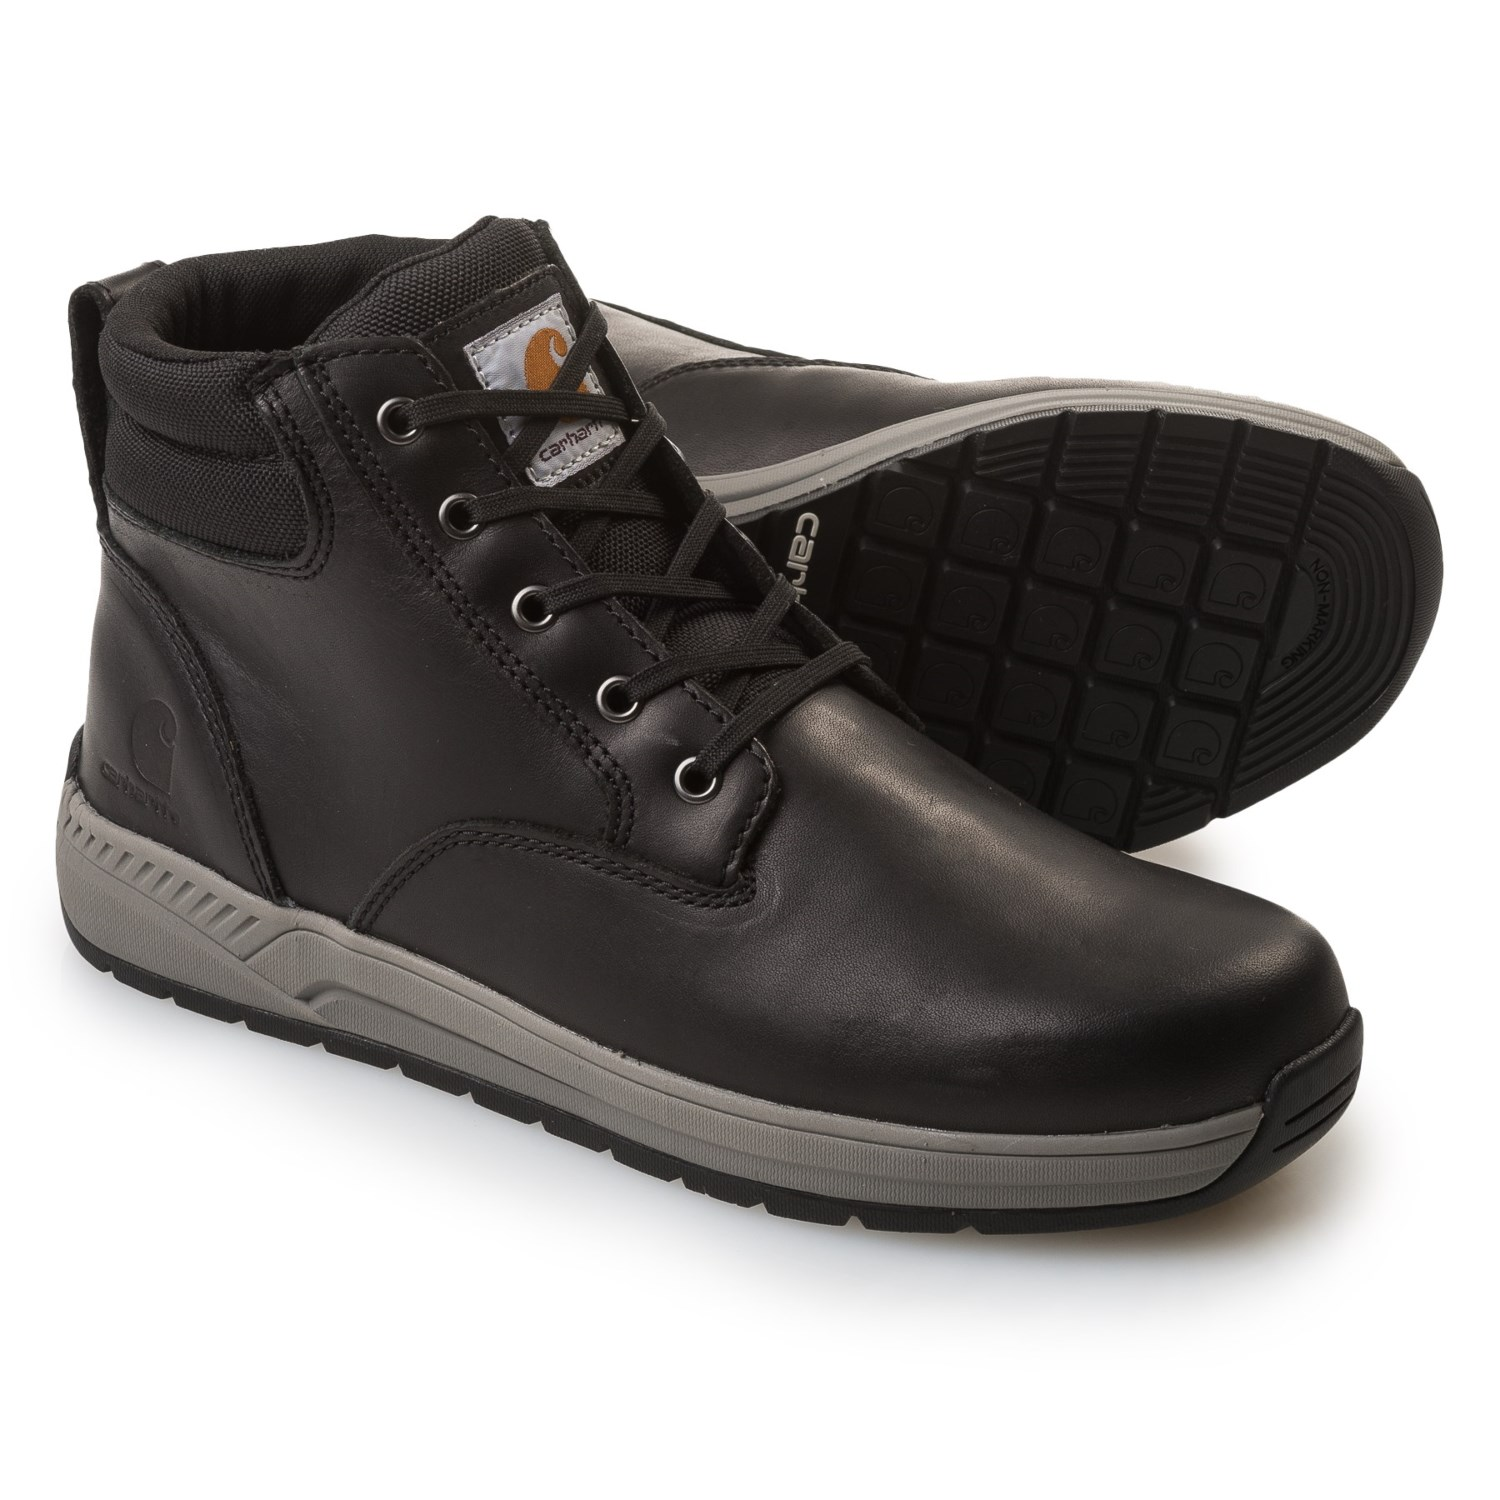 "Carhartt Lightweight Wedge Work Boots - Leather, 4"" (For Men)"